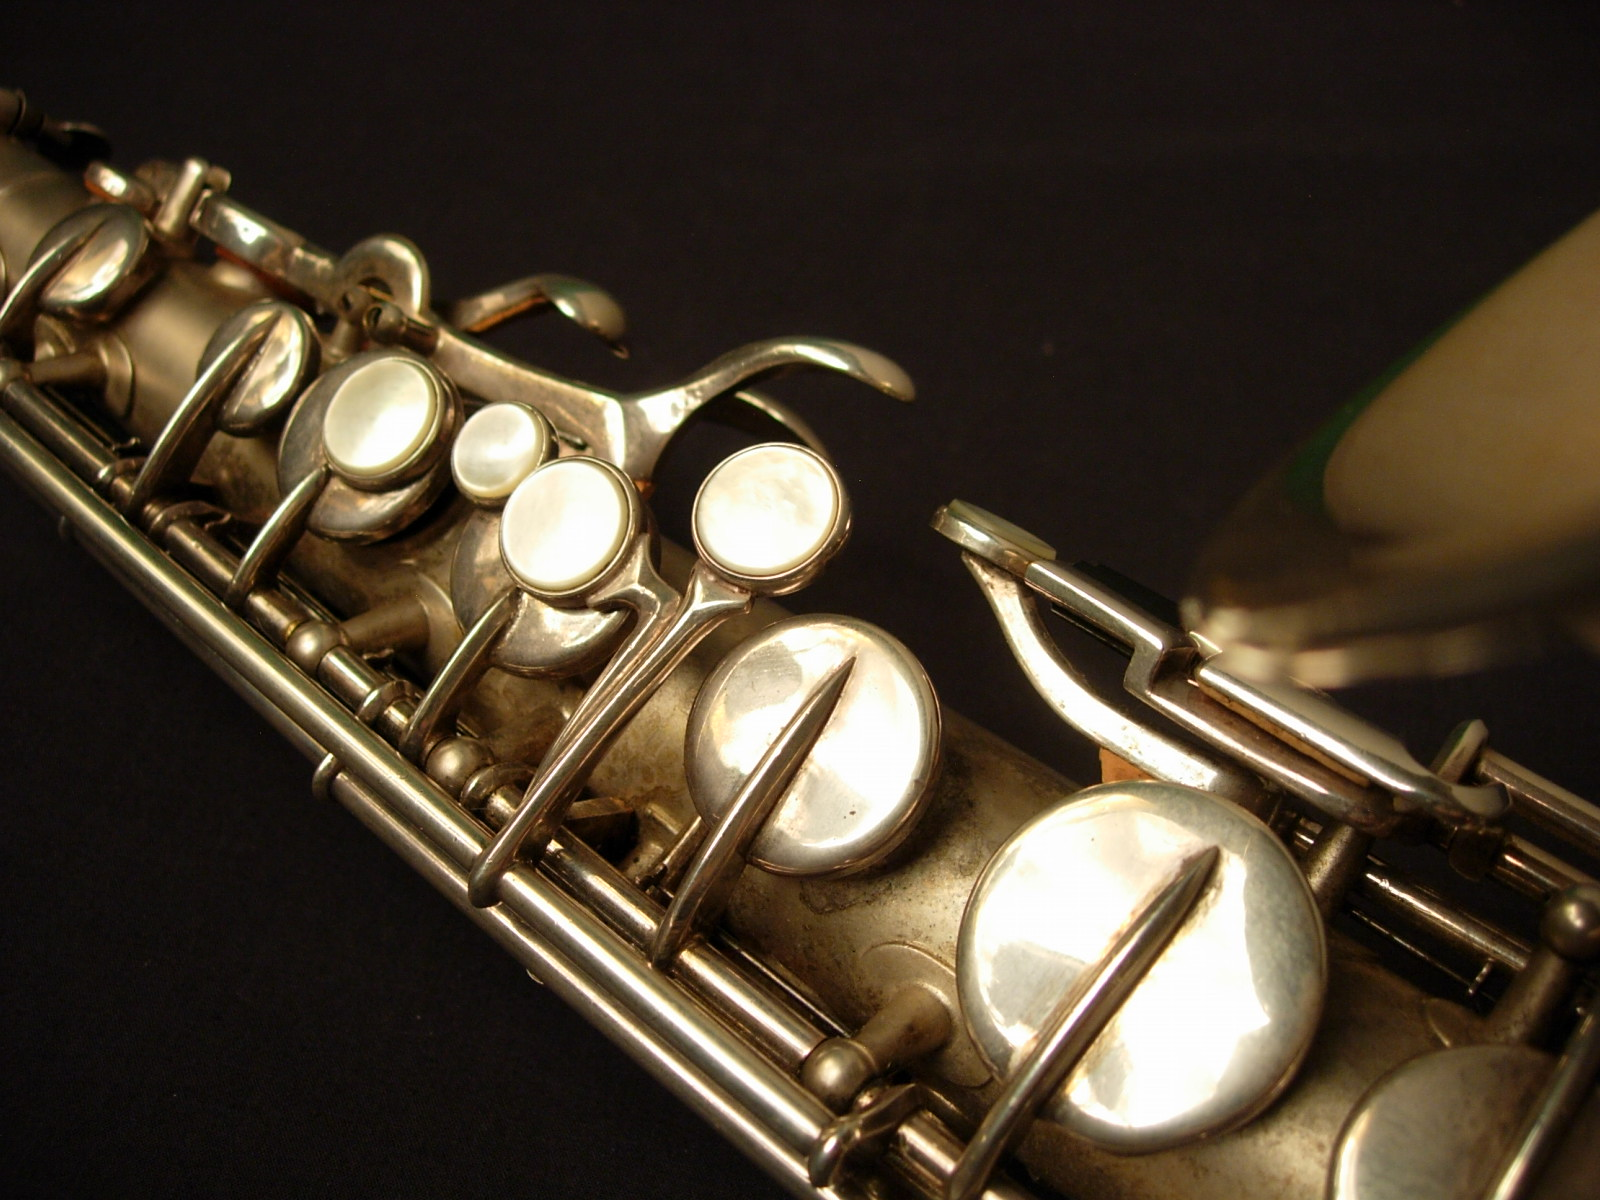 Pin Wallpaper Saxophone Money Gold Bars Hd Jazz Sax 1600x1200